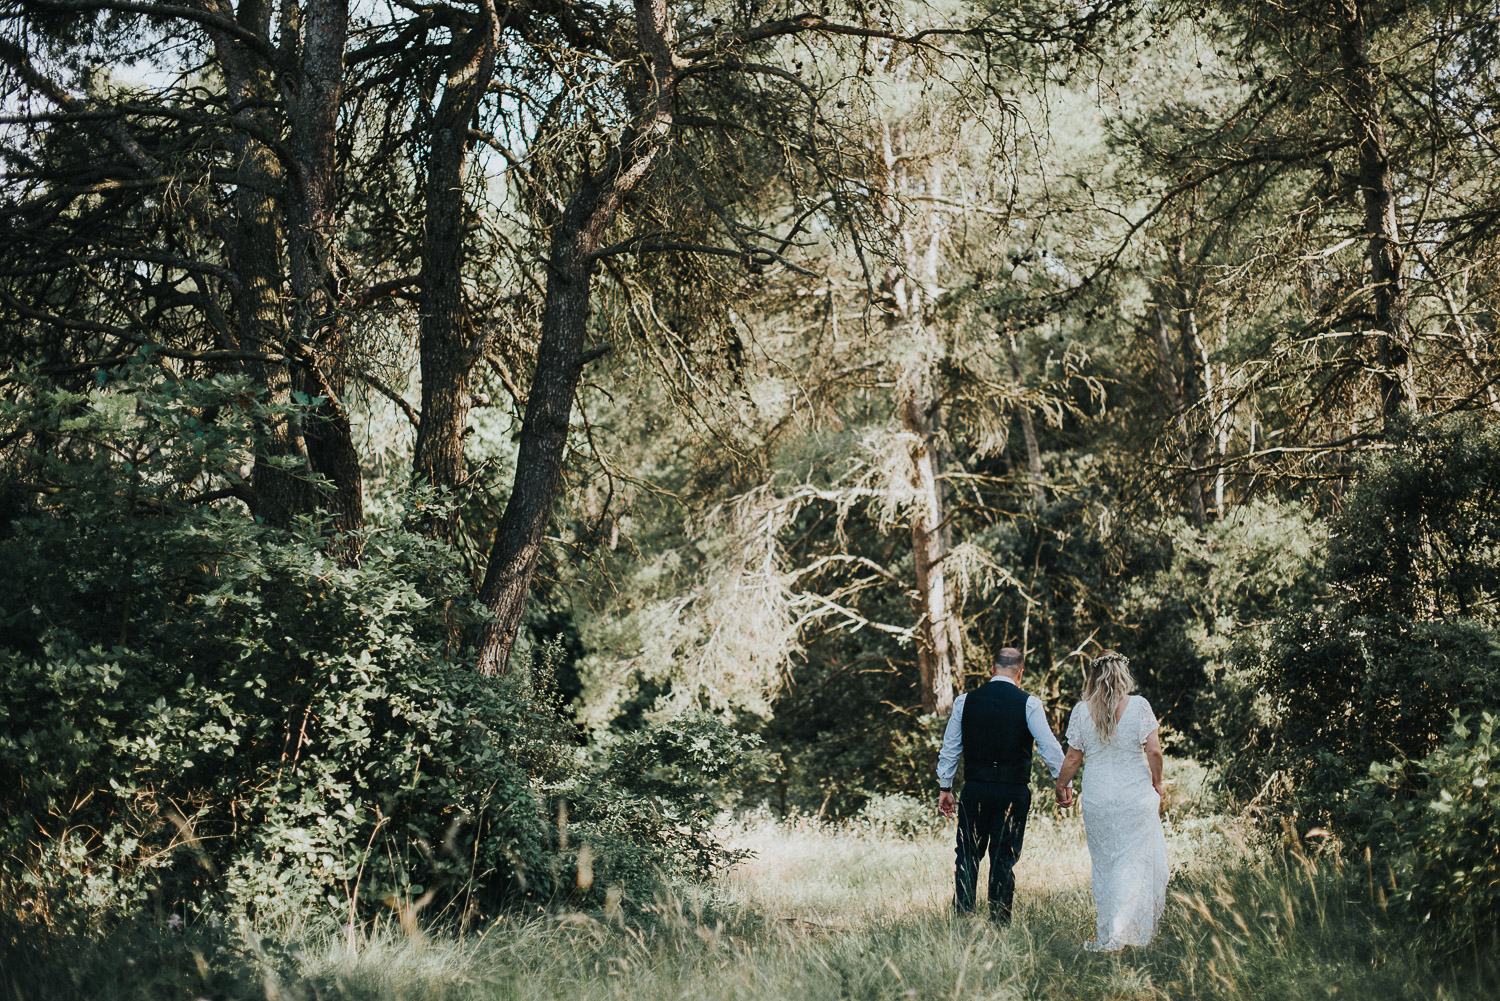 chateau_canet_carcassonne_wedding_katy_webb_photography_france_UK156